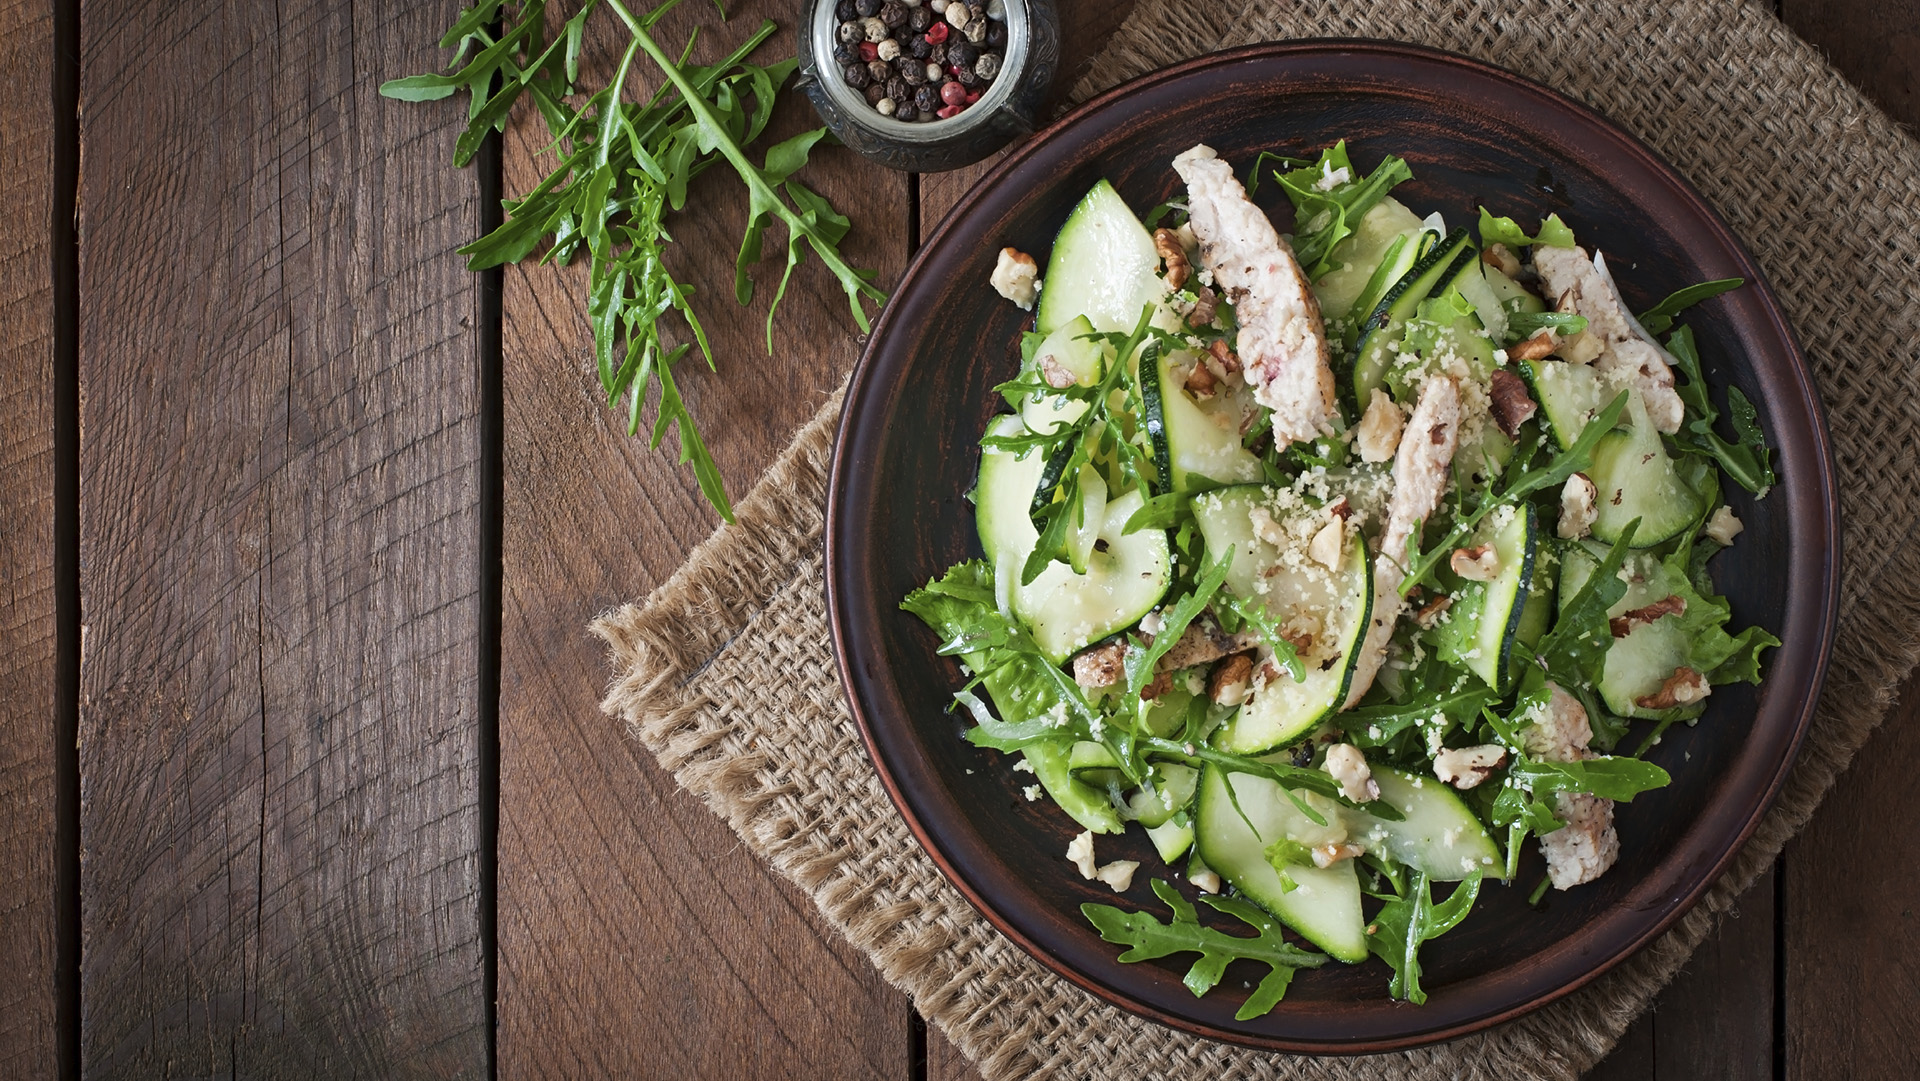 green-salad-with-chicken